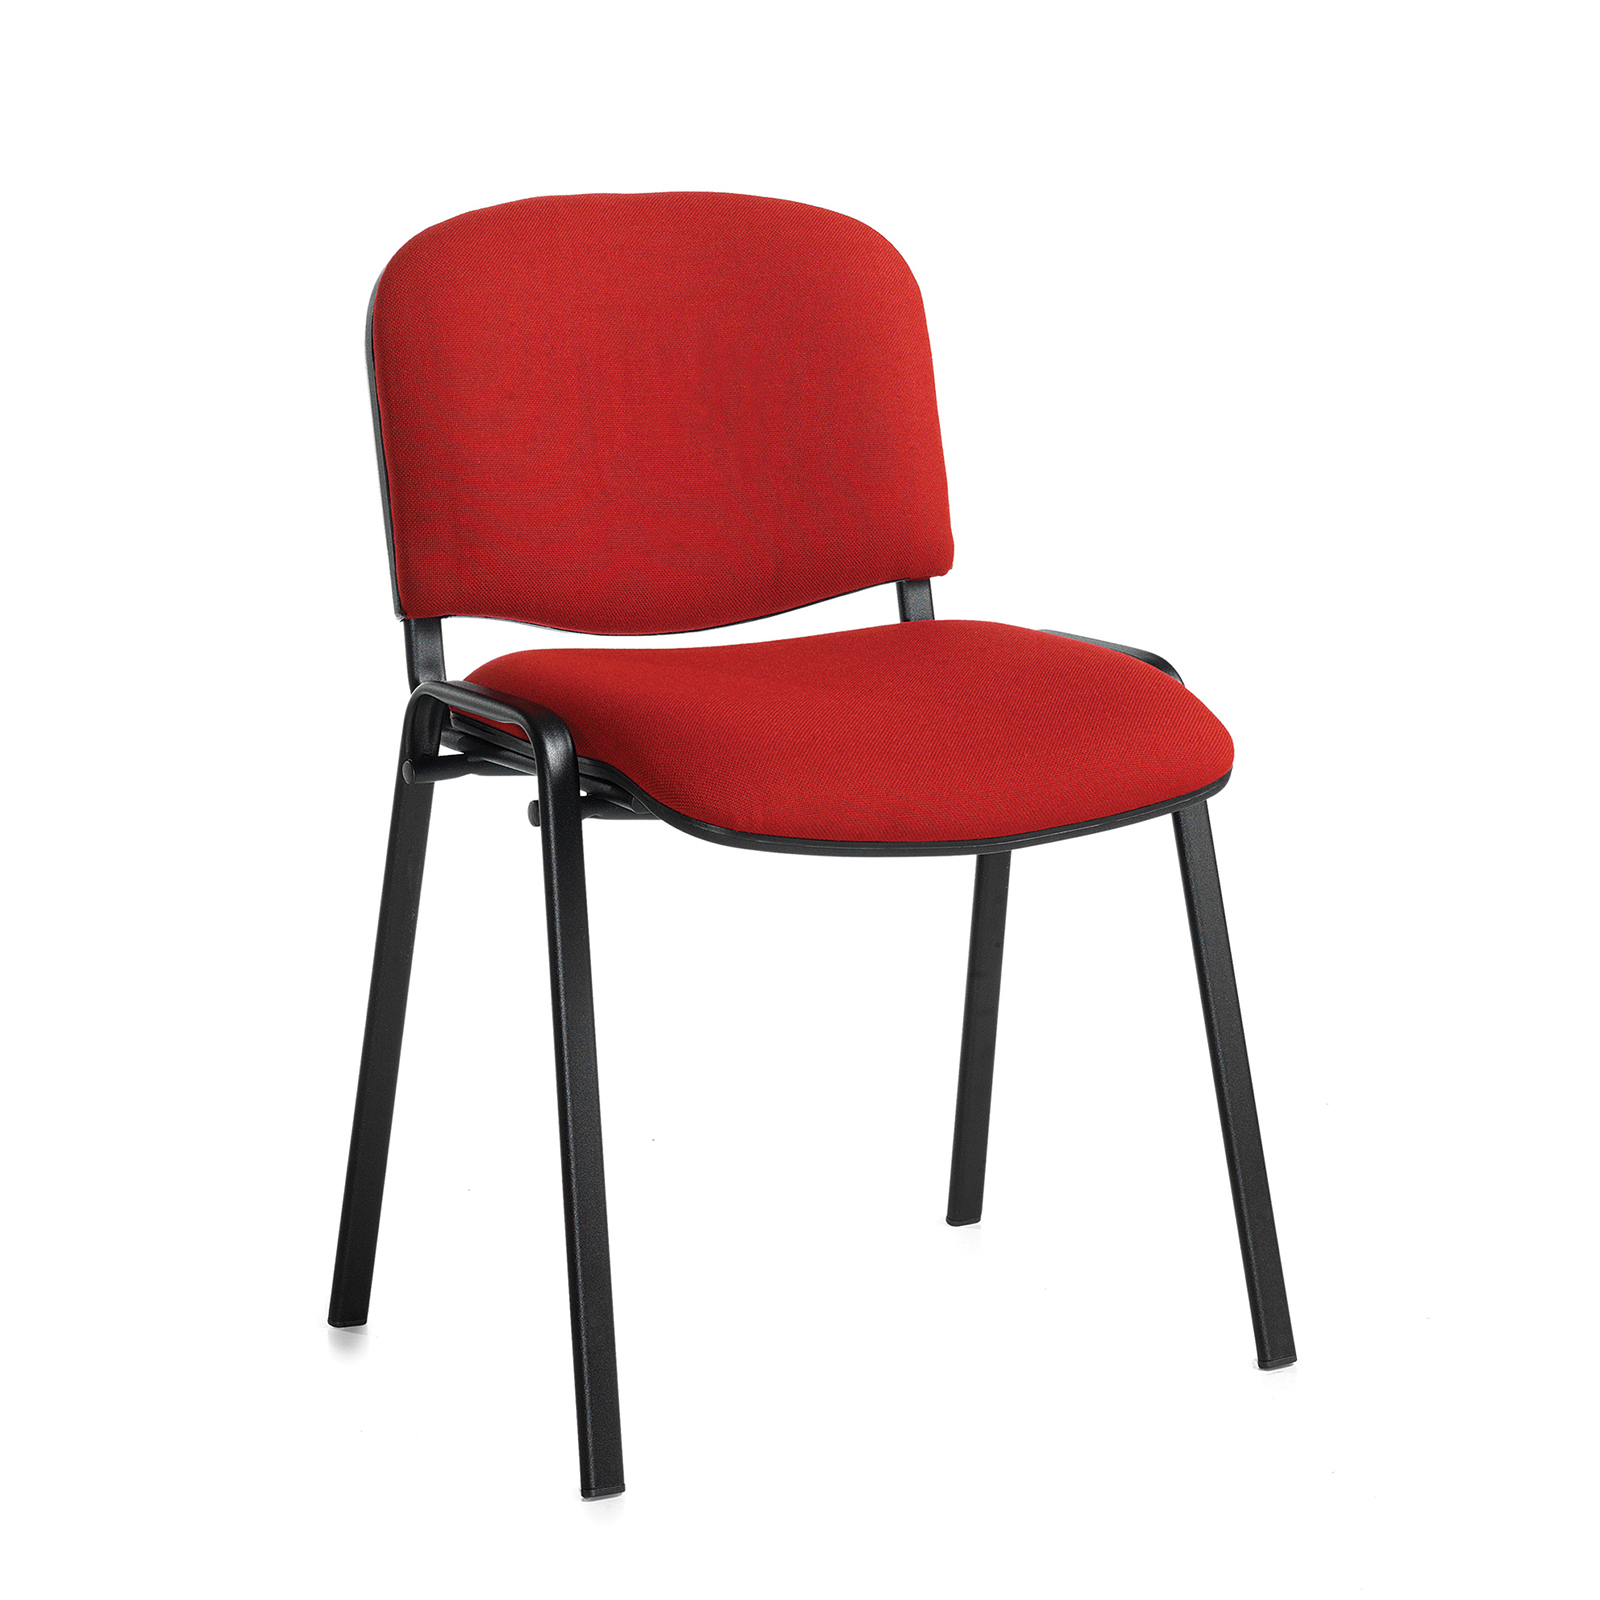 Taurus meeting room stackable chair with black frame and no arms - burgundy